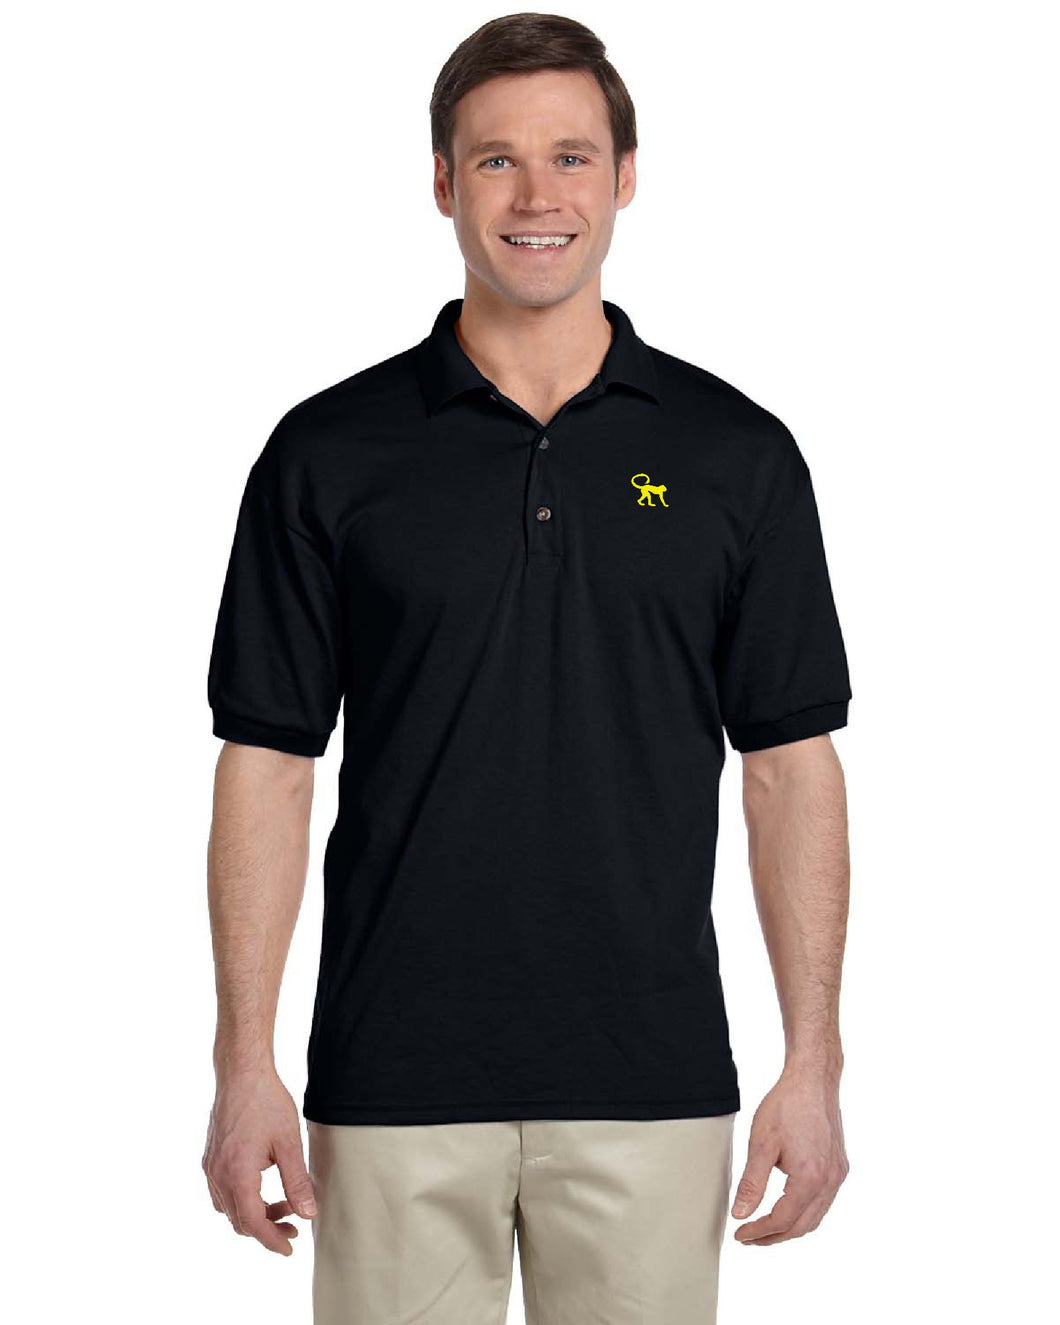 Sticknwrap Polo